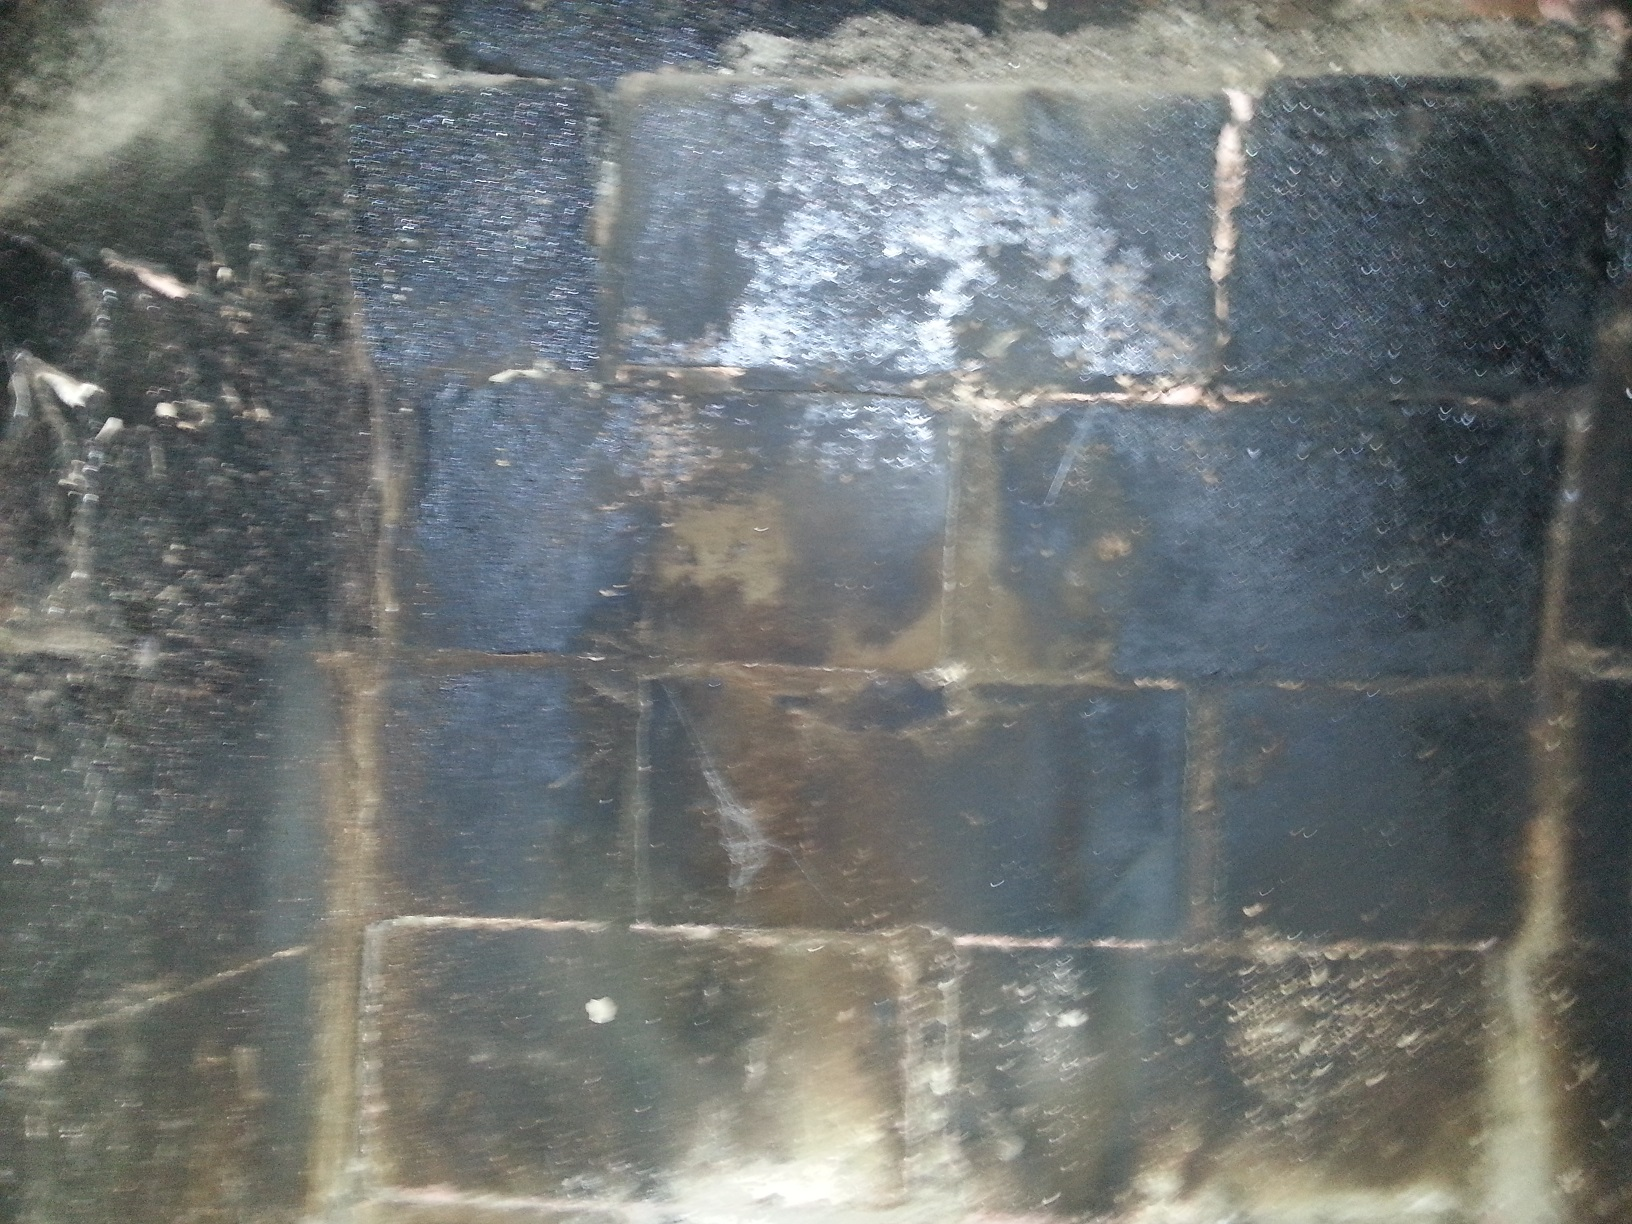 Chimney Fireplace Repairs Inside Your Firebox Fire